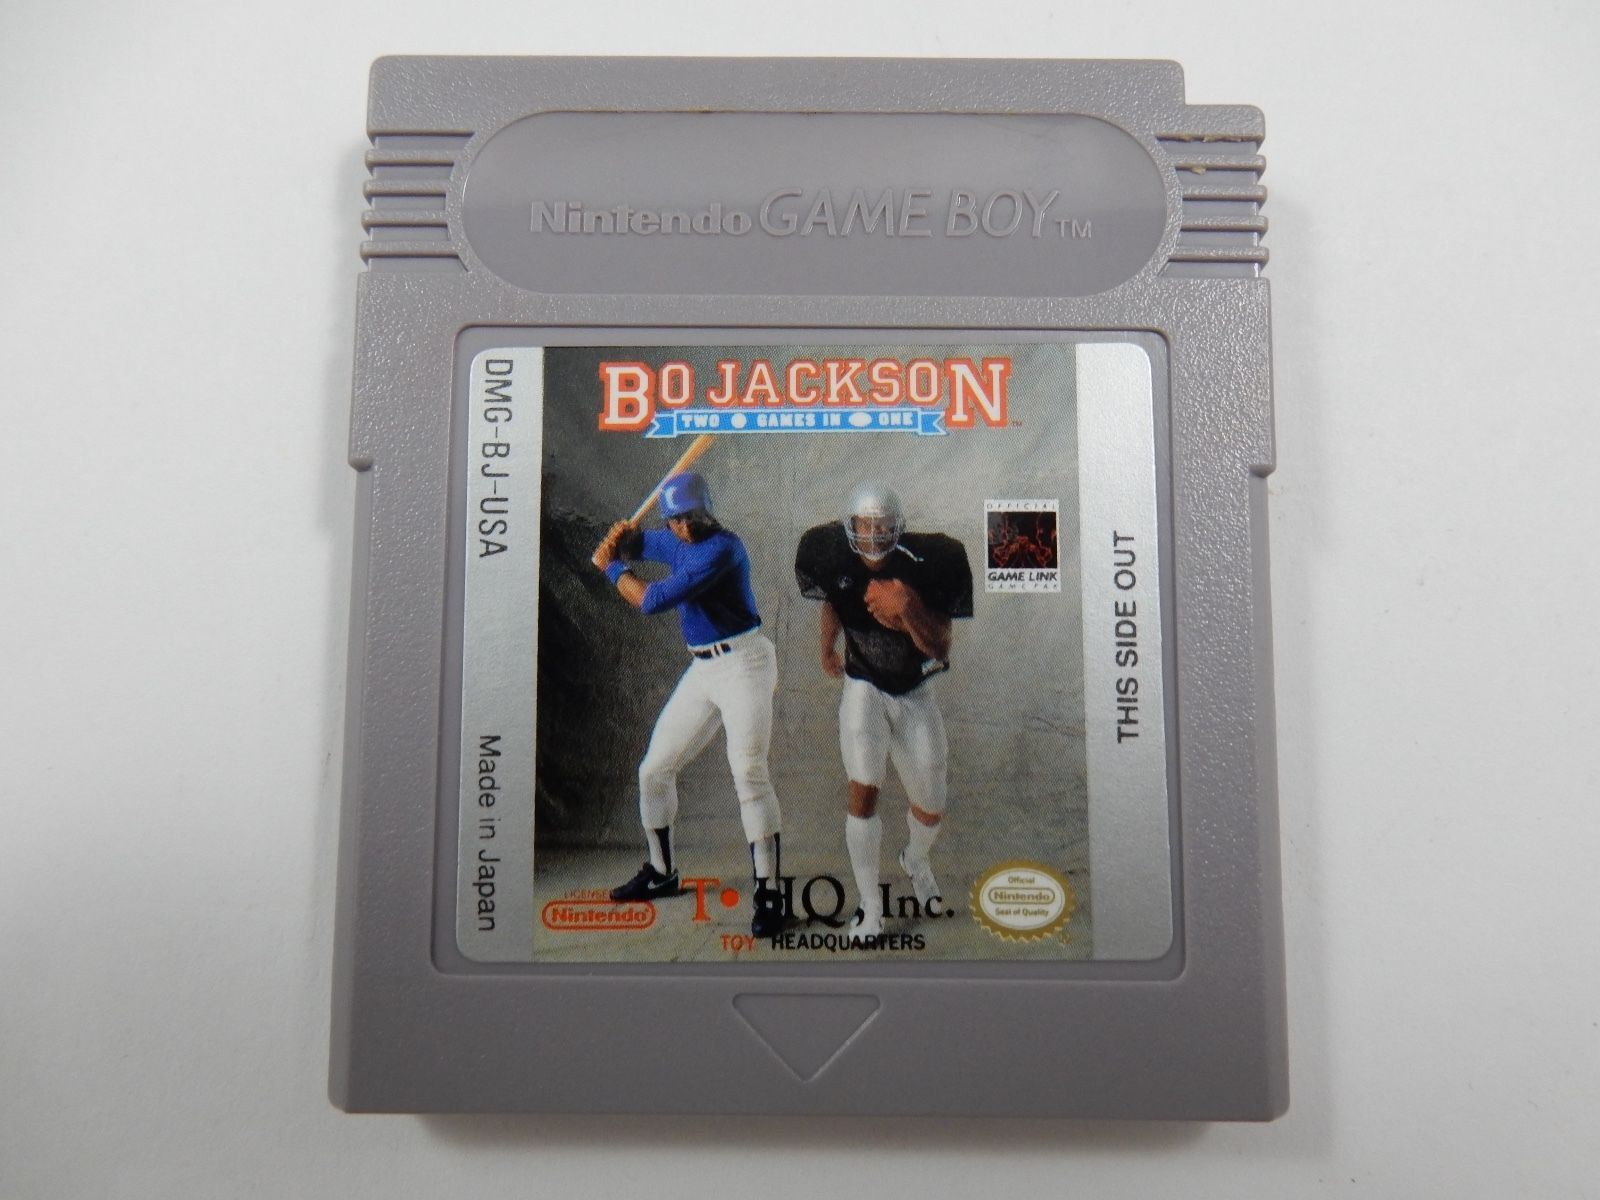 Primary image for Bo Jackson: Two Games In One (Nintendo Game Boy, 1991) CARTRIDGE ONLY